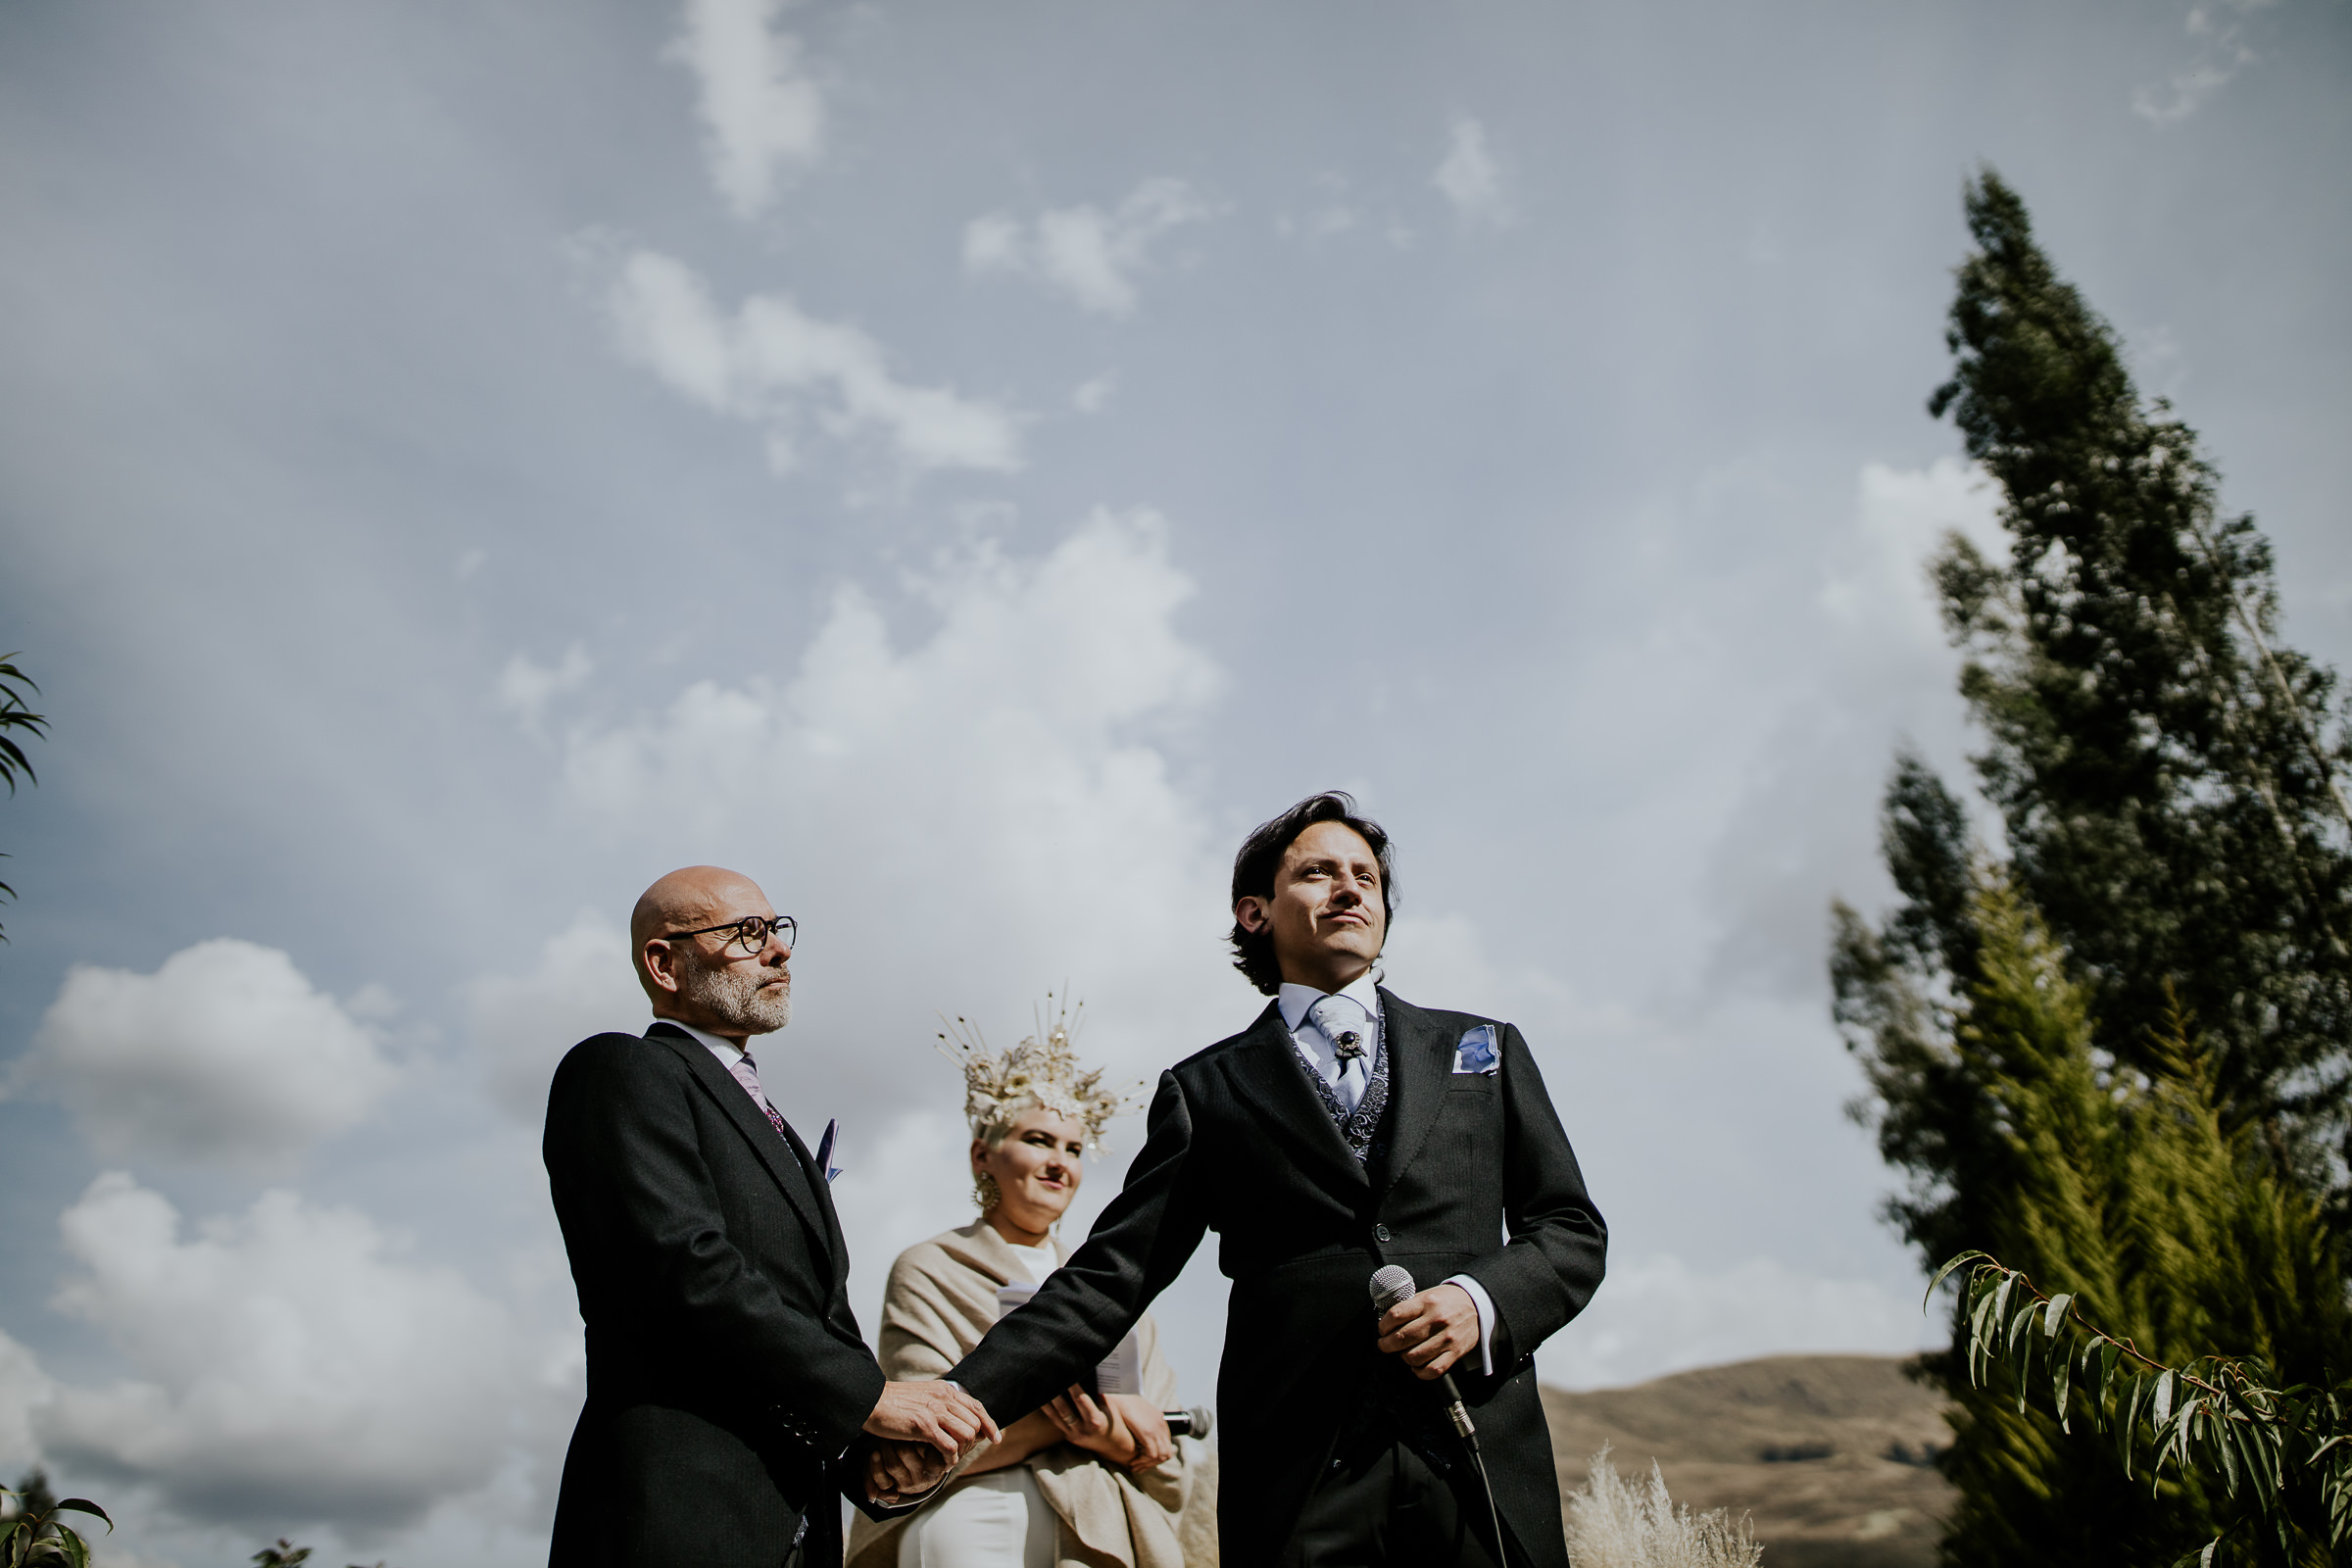 two men getting married in a peruvian ceremony